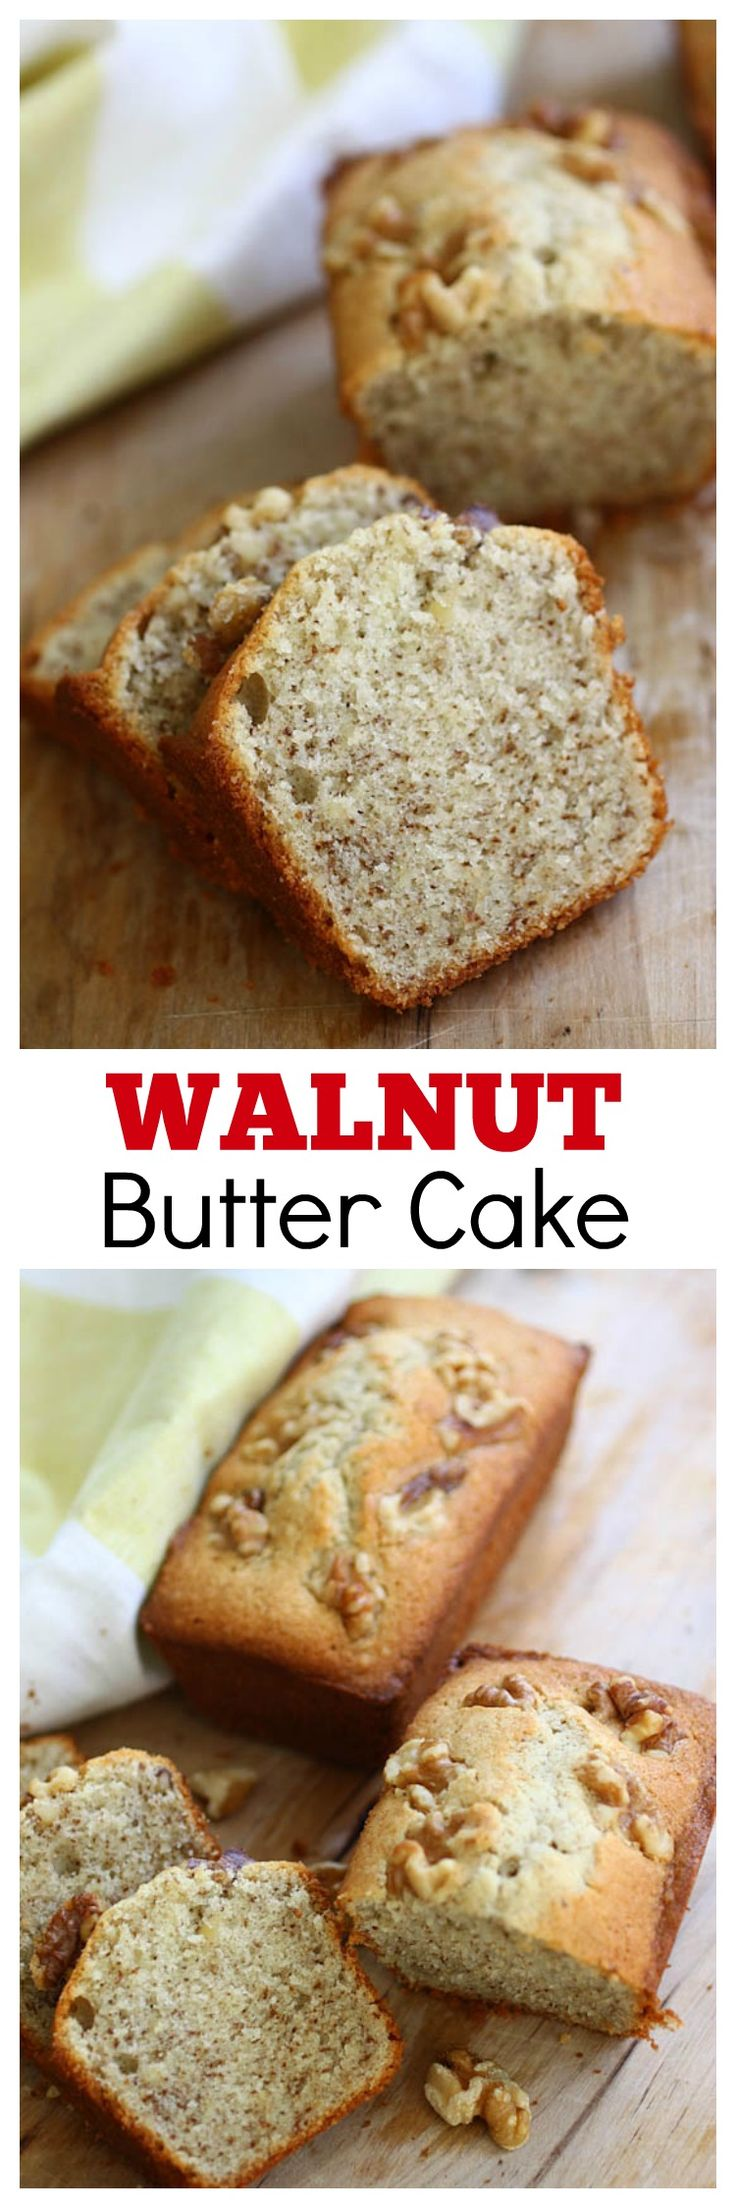 Walnut Butter Cake - rich and sweet butter cake LOADED with ground walnut, the best cake ever | rasamalaysia.com